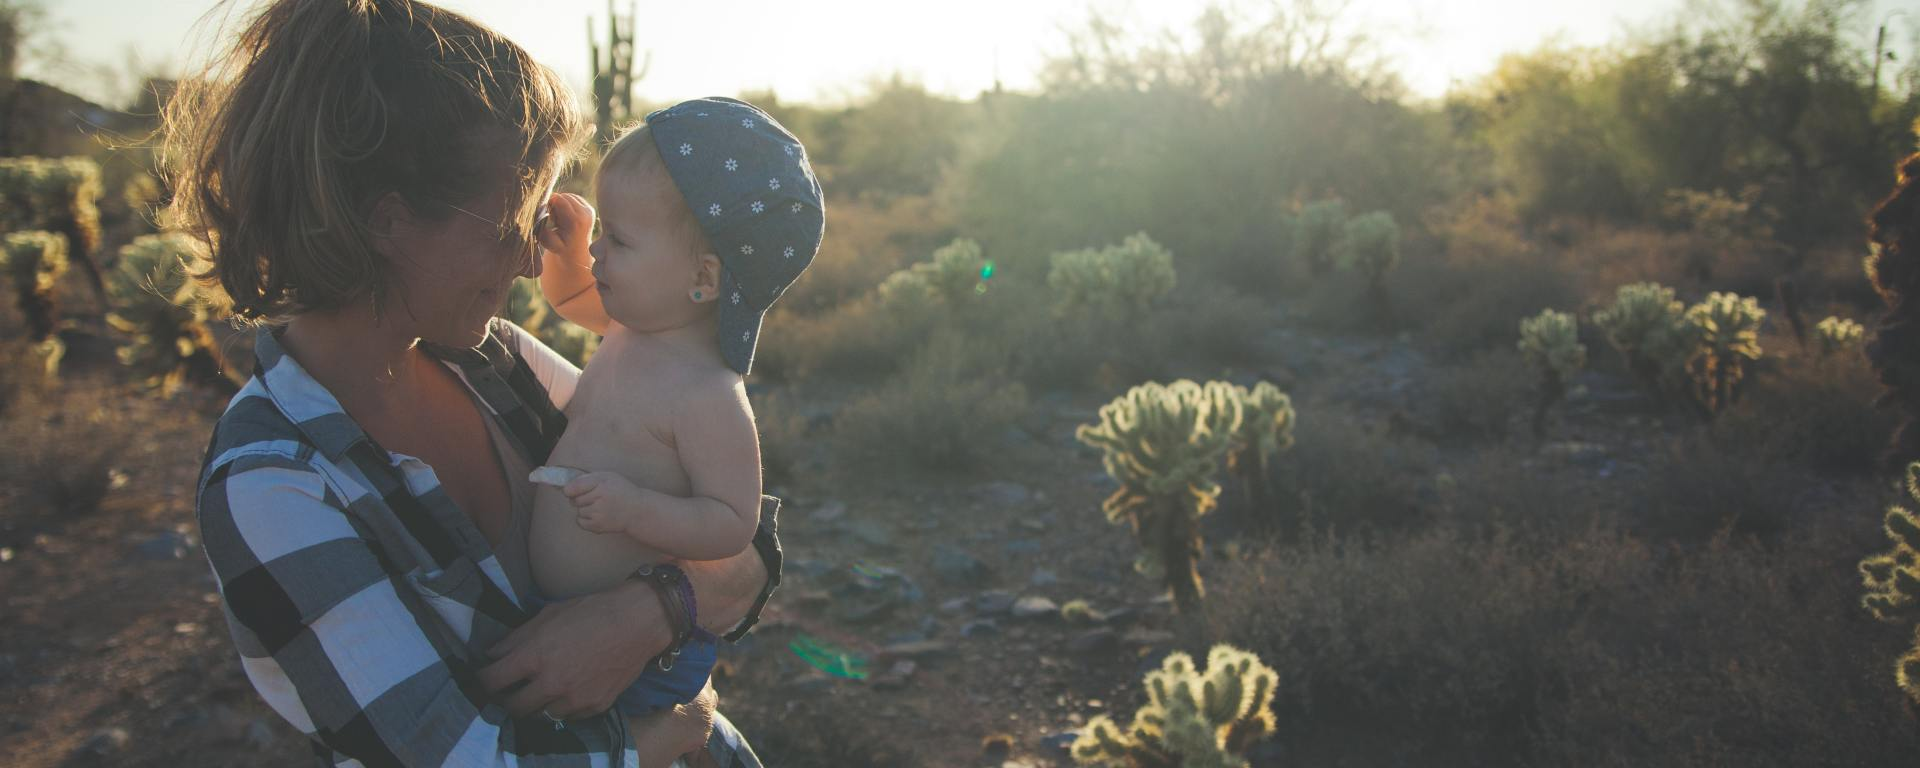 Mom holding little boy on wooded trail